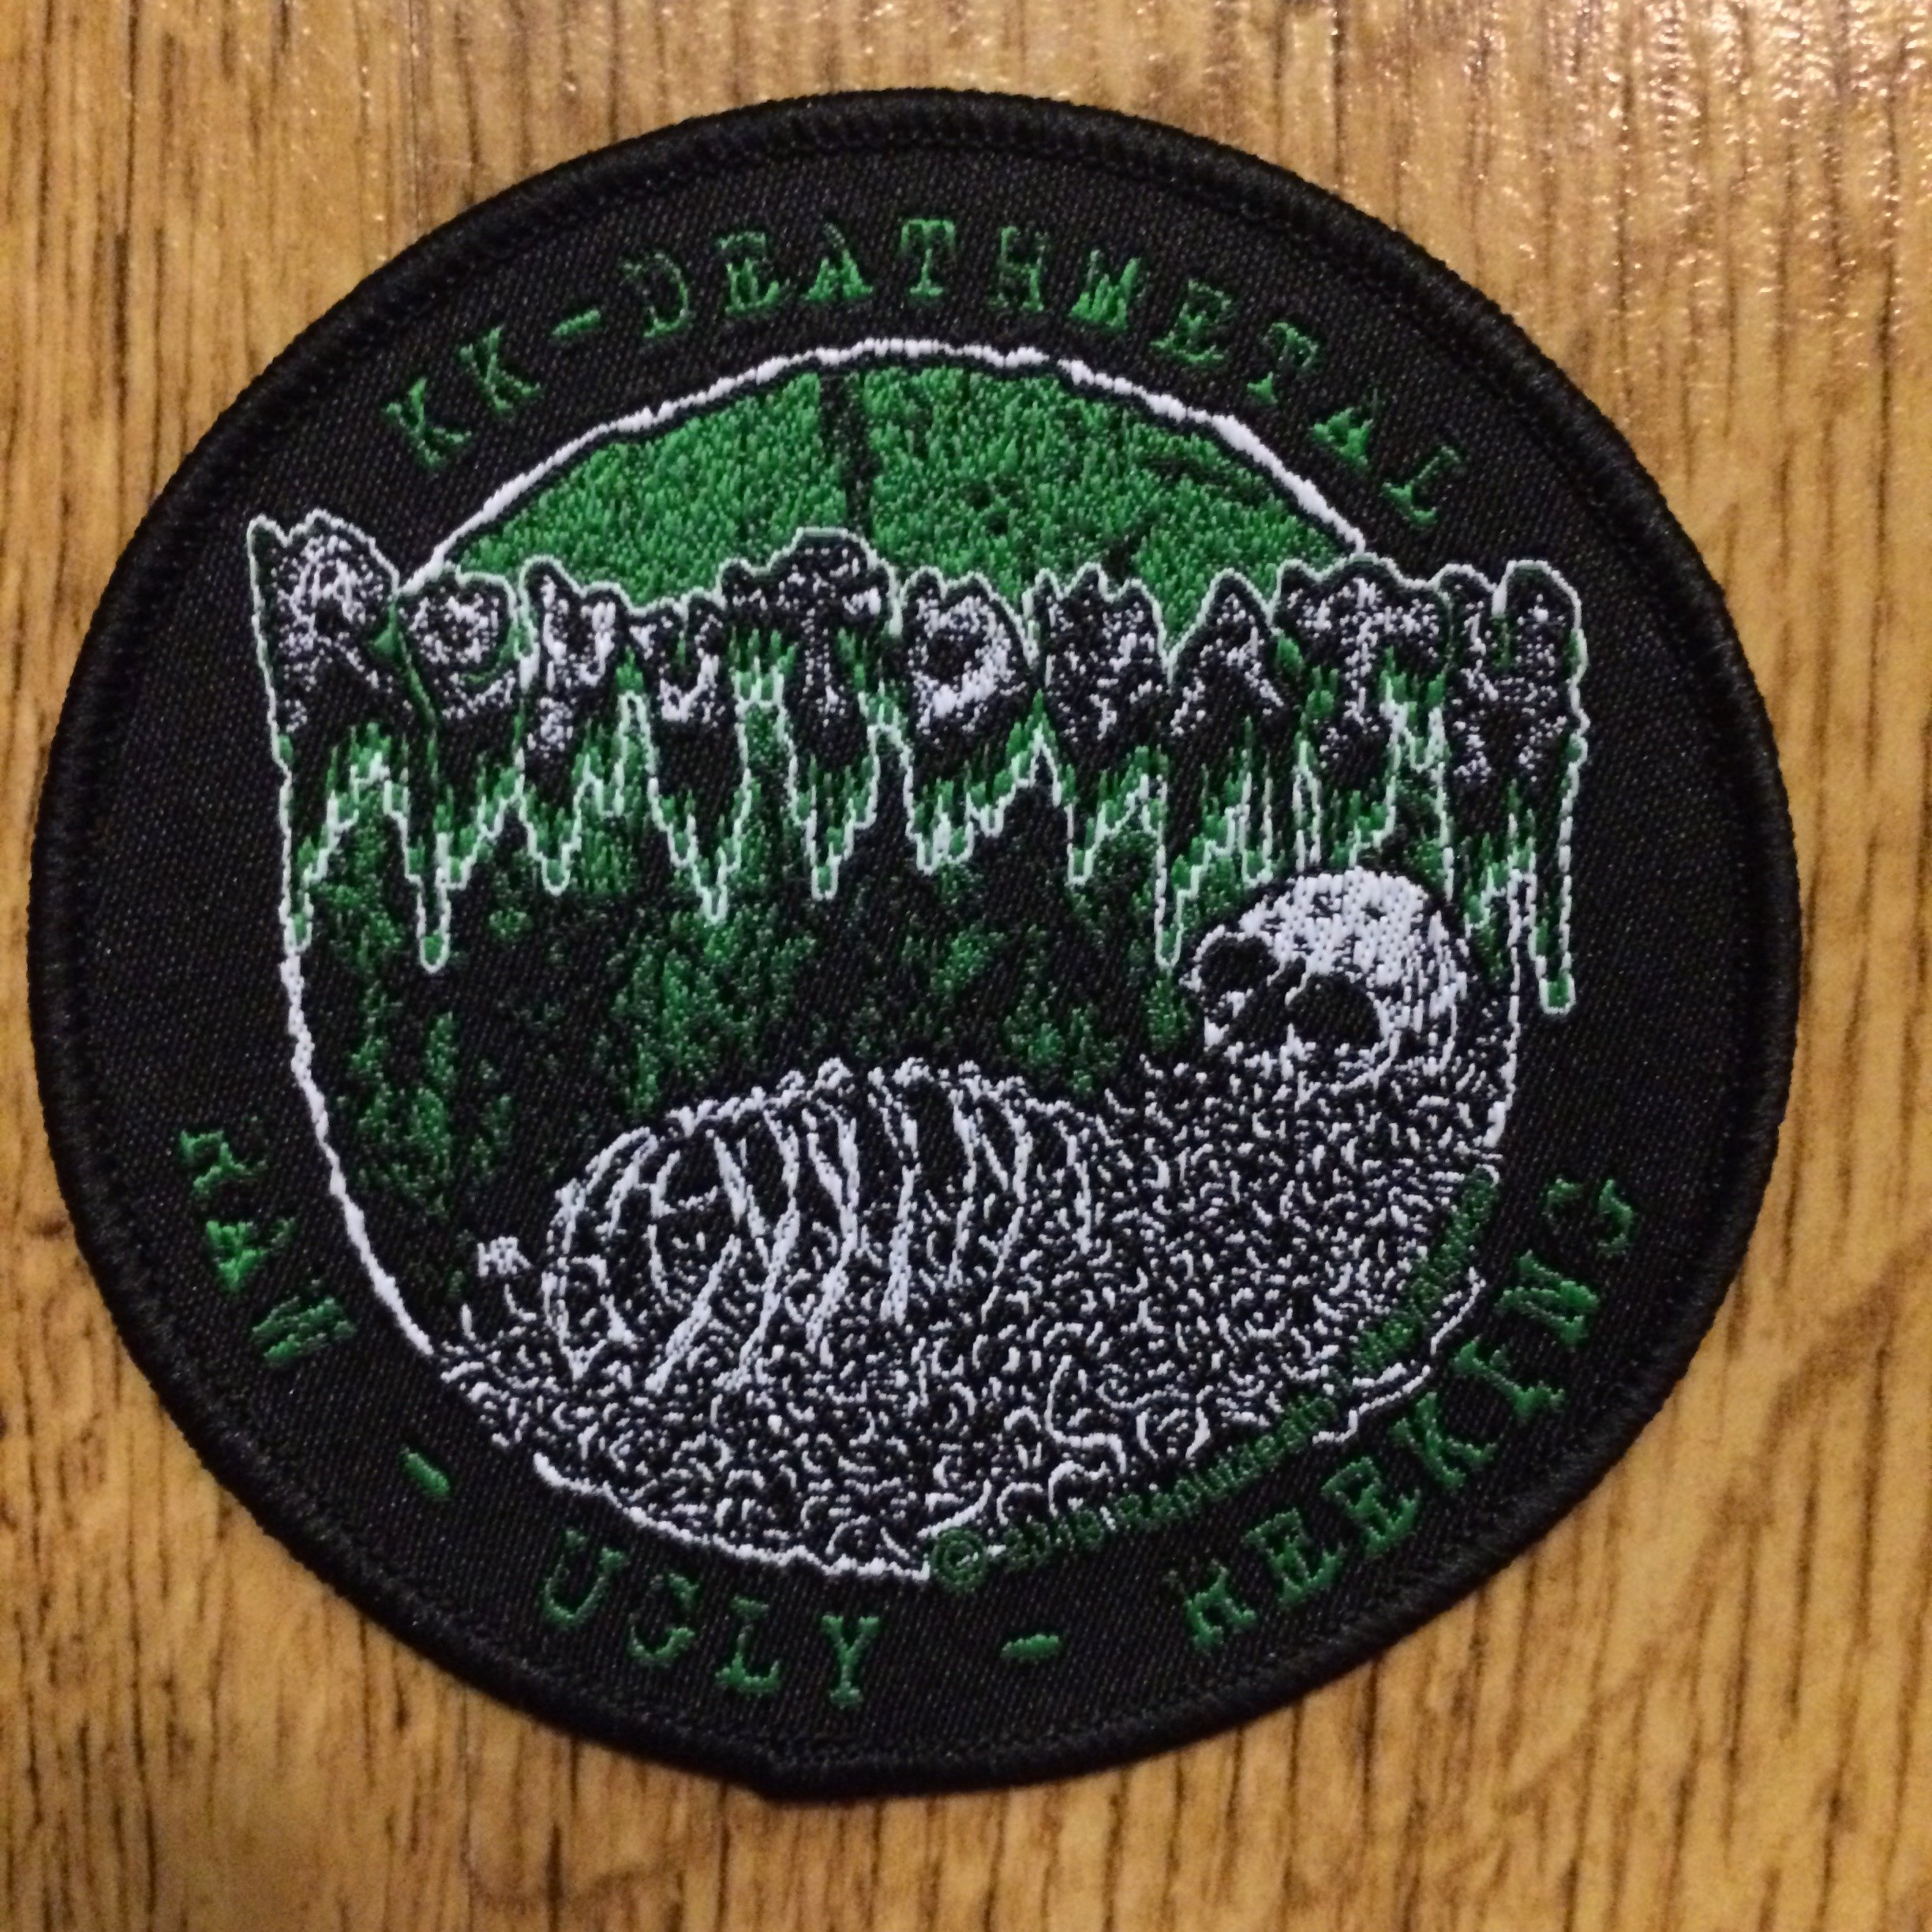 Photo of the Reputdeath - Patch